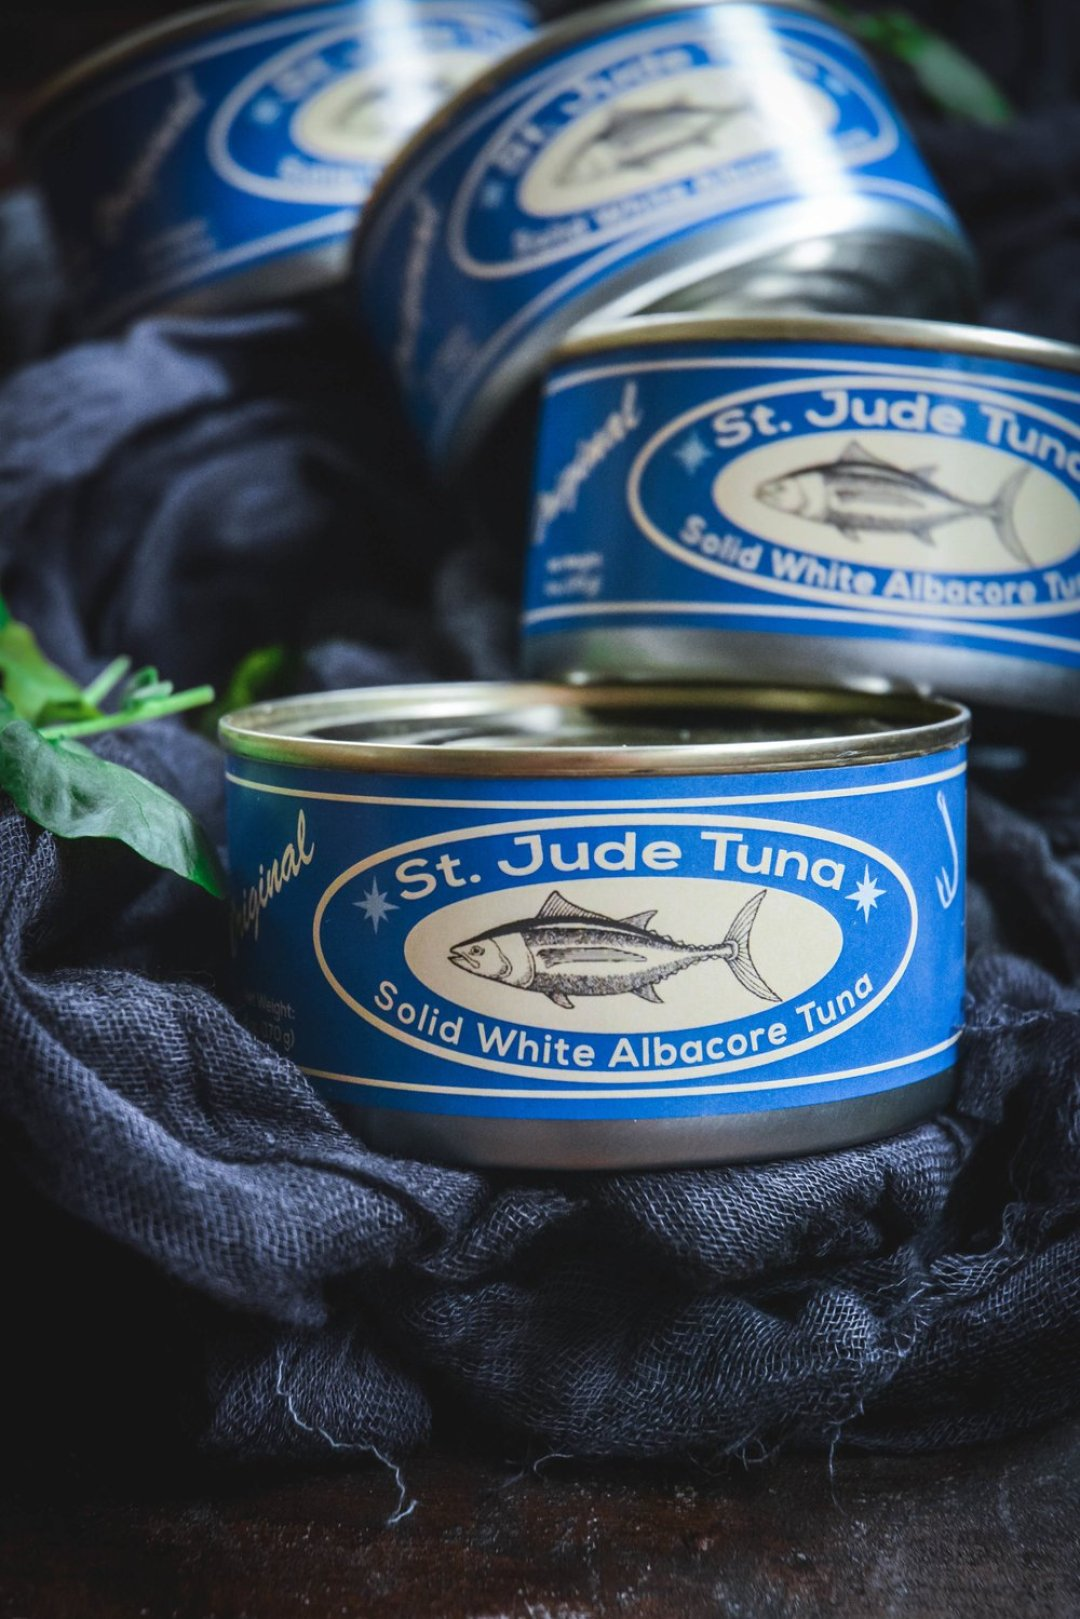 4 cans of st. jude tuna with blue labels